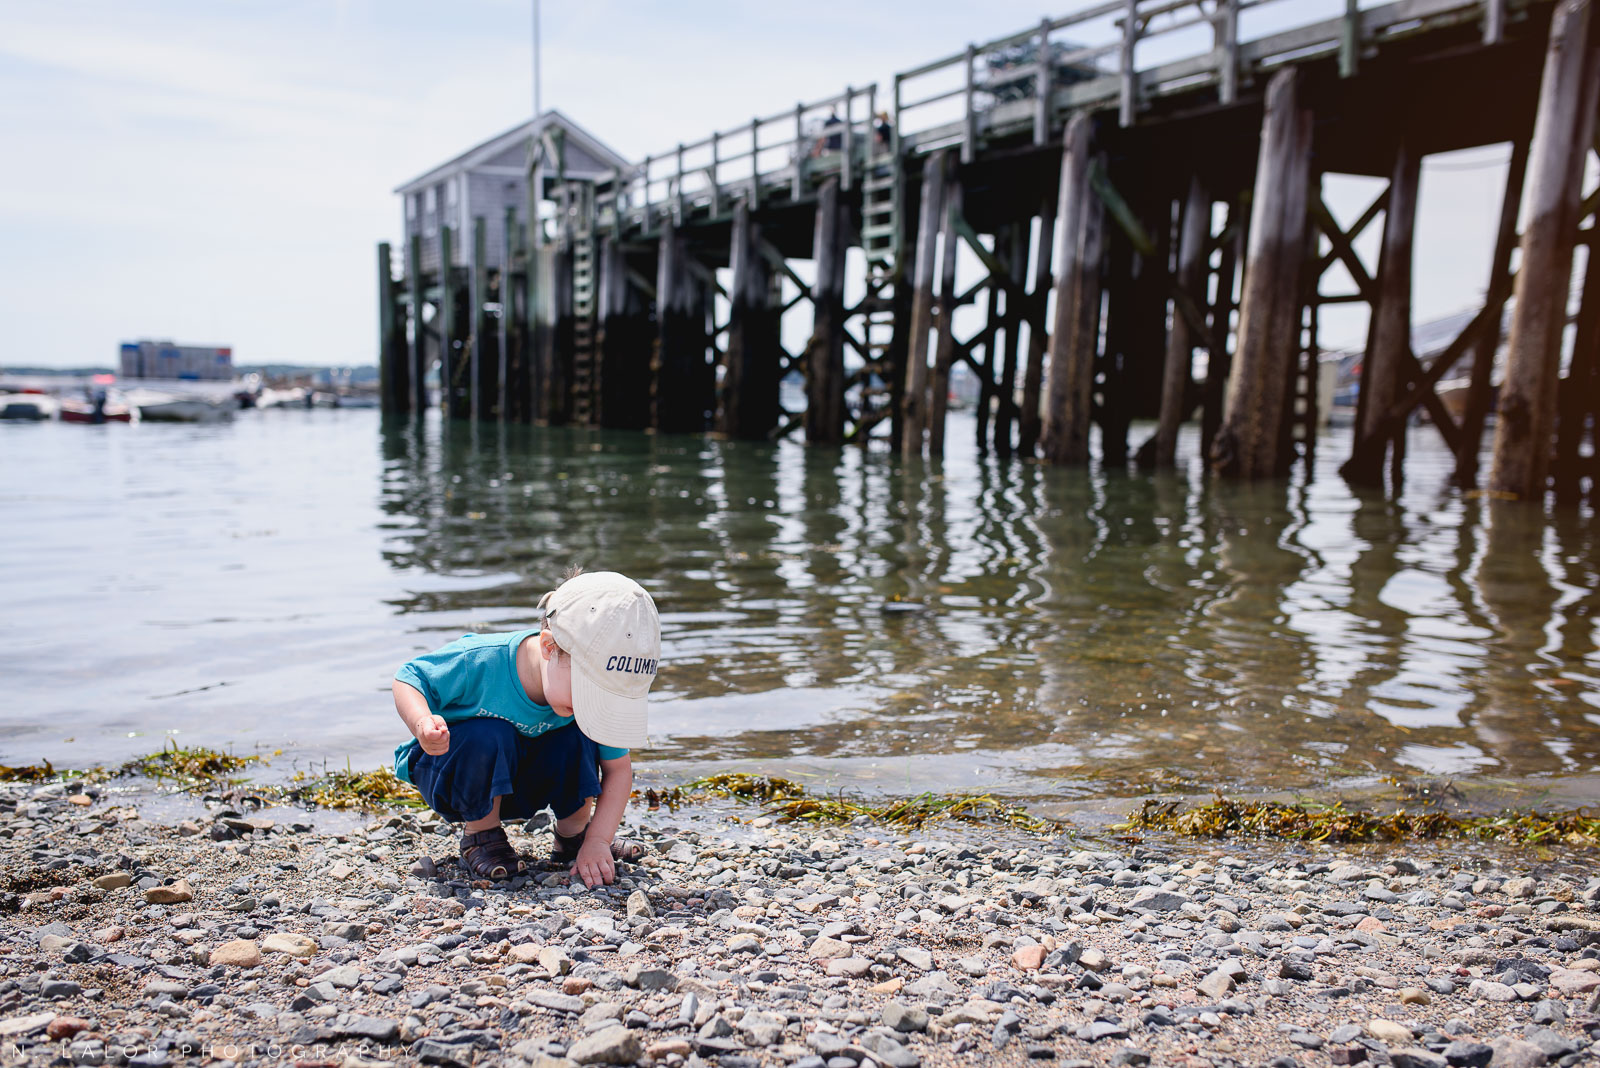 Toddler's favorite pastime, rocks! Little Cranberry Island, Maine. Photo by N Lalor Photography.